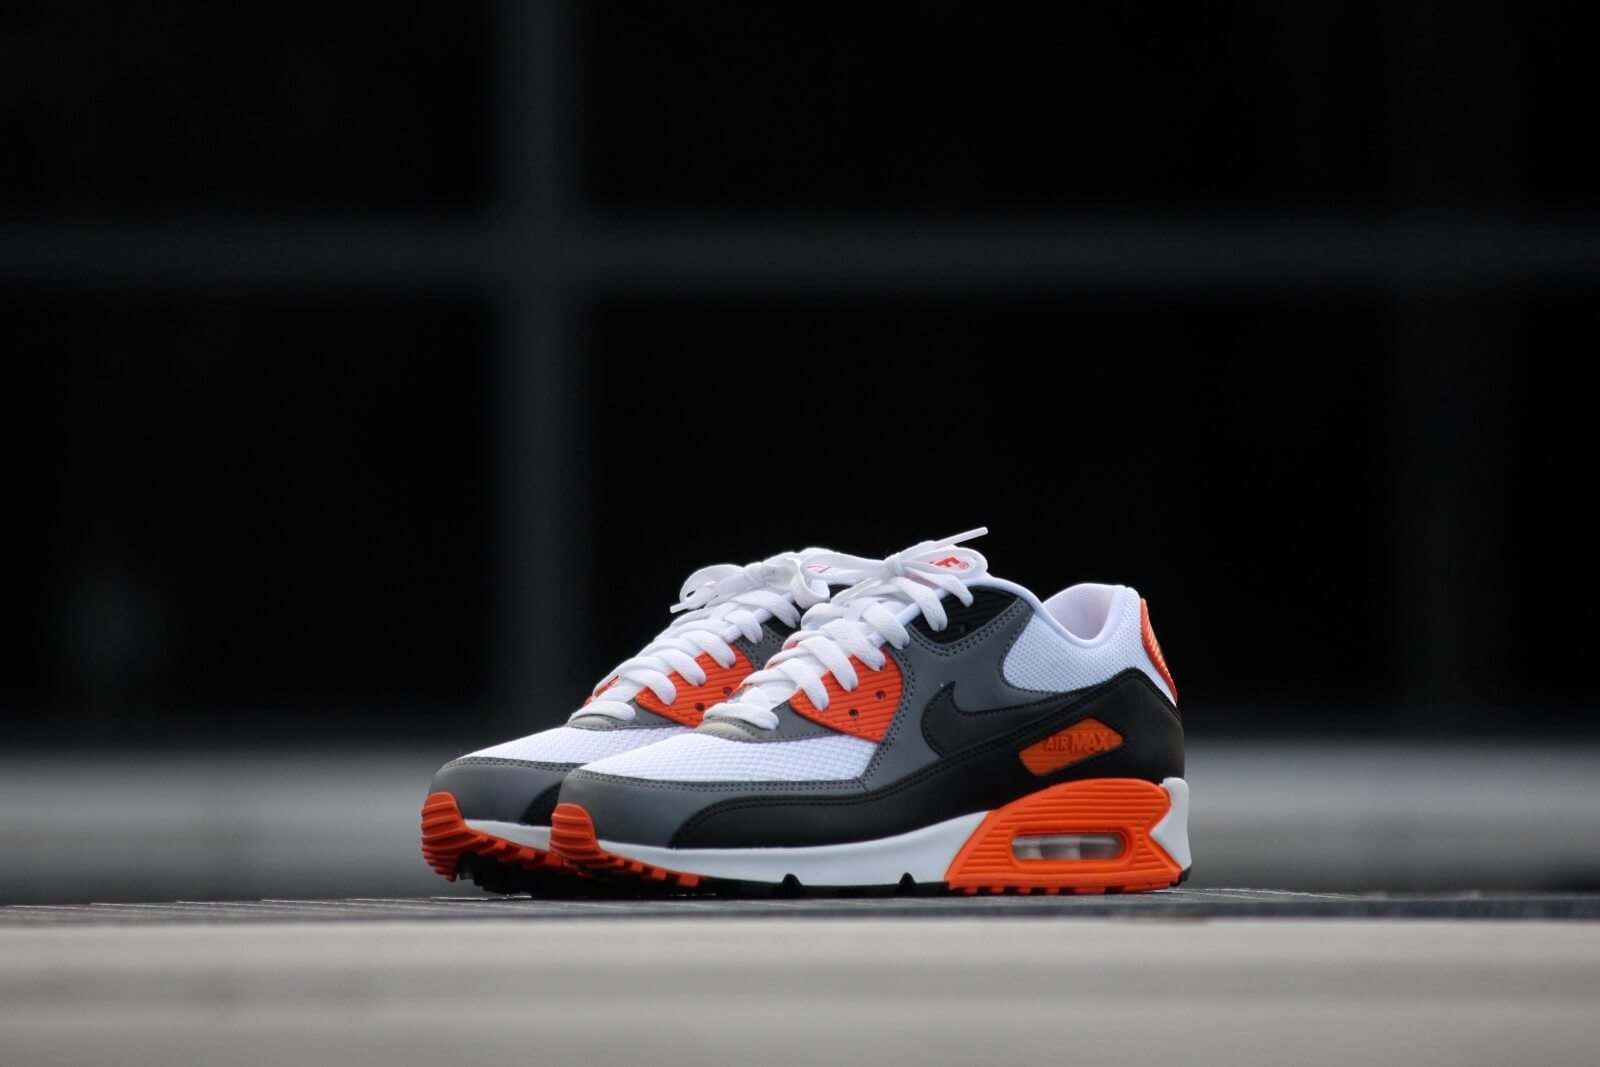 Nike Air Max 90 Essential White Anthracite Cool Grey Orange White Anthracite Cool Grey Orange